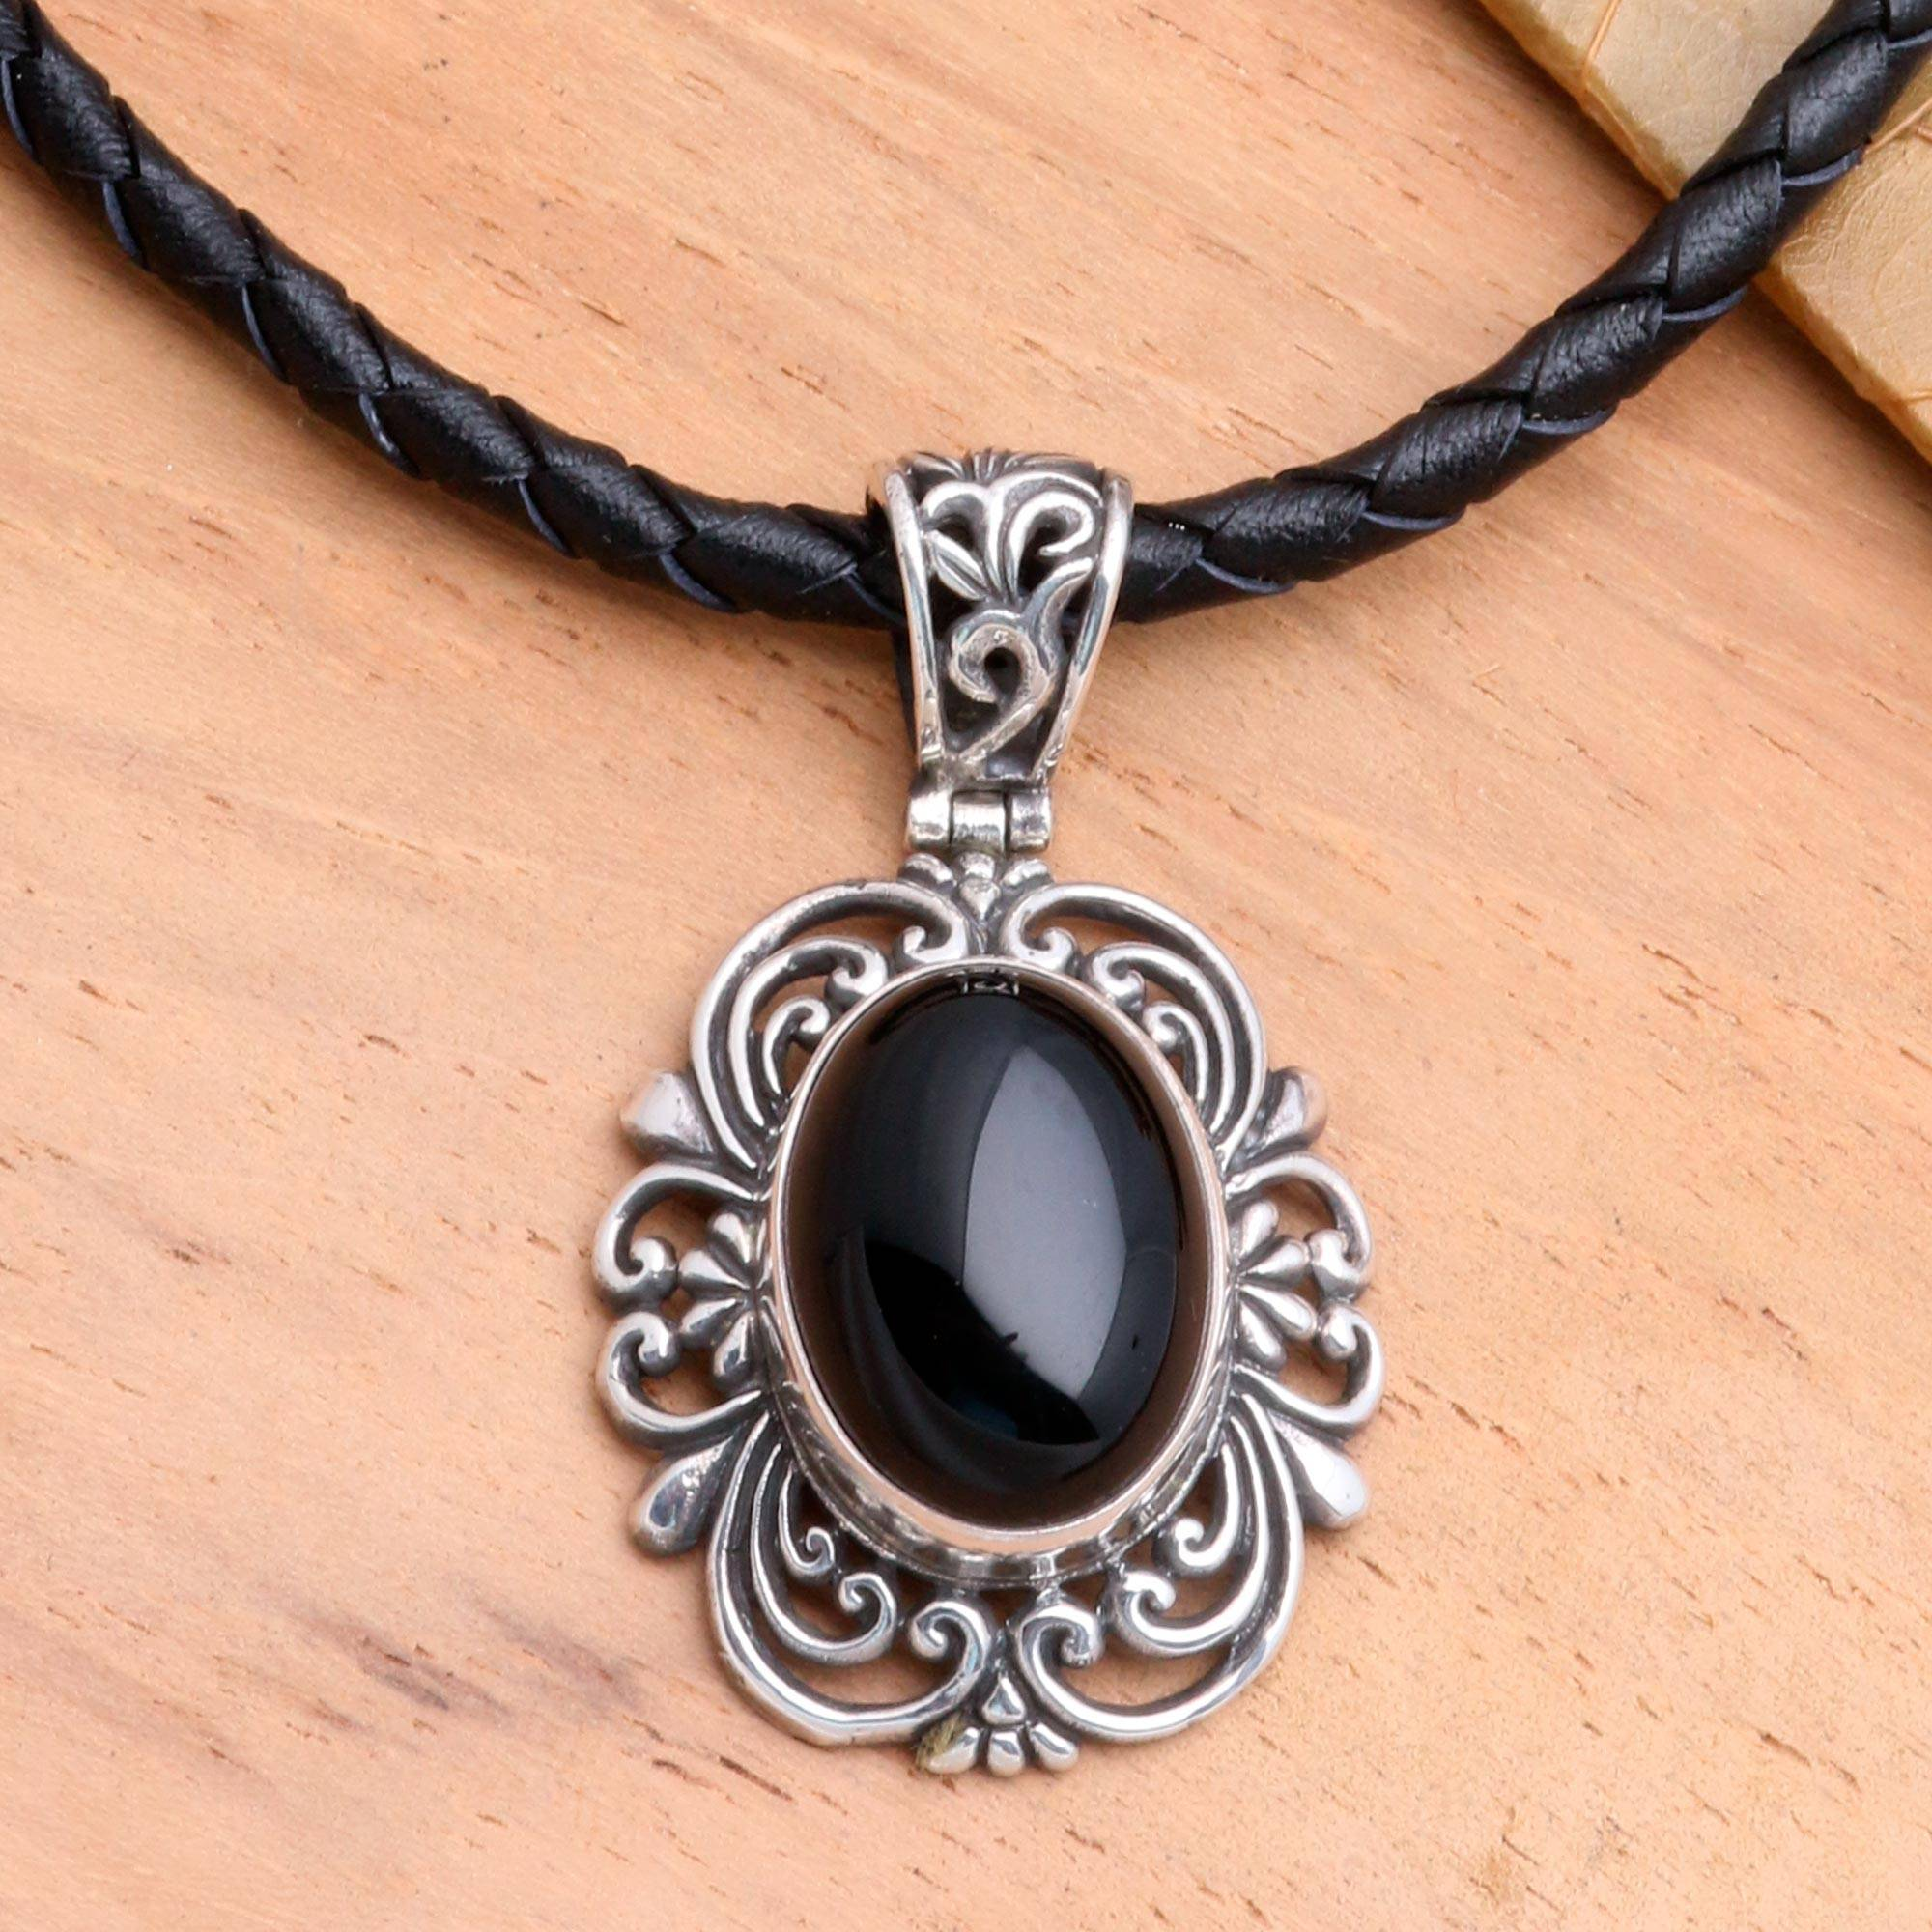 Silver chain jewellery - Sterling Silver and Onyx Necklace from Indonesia